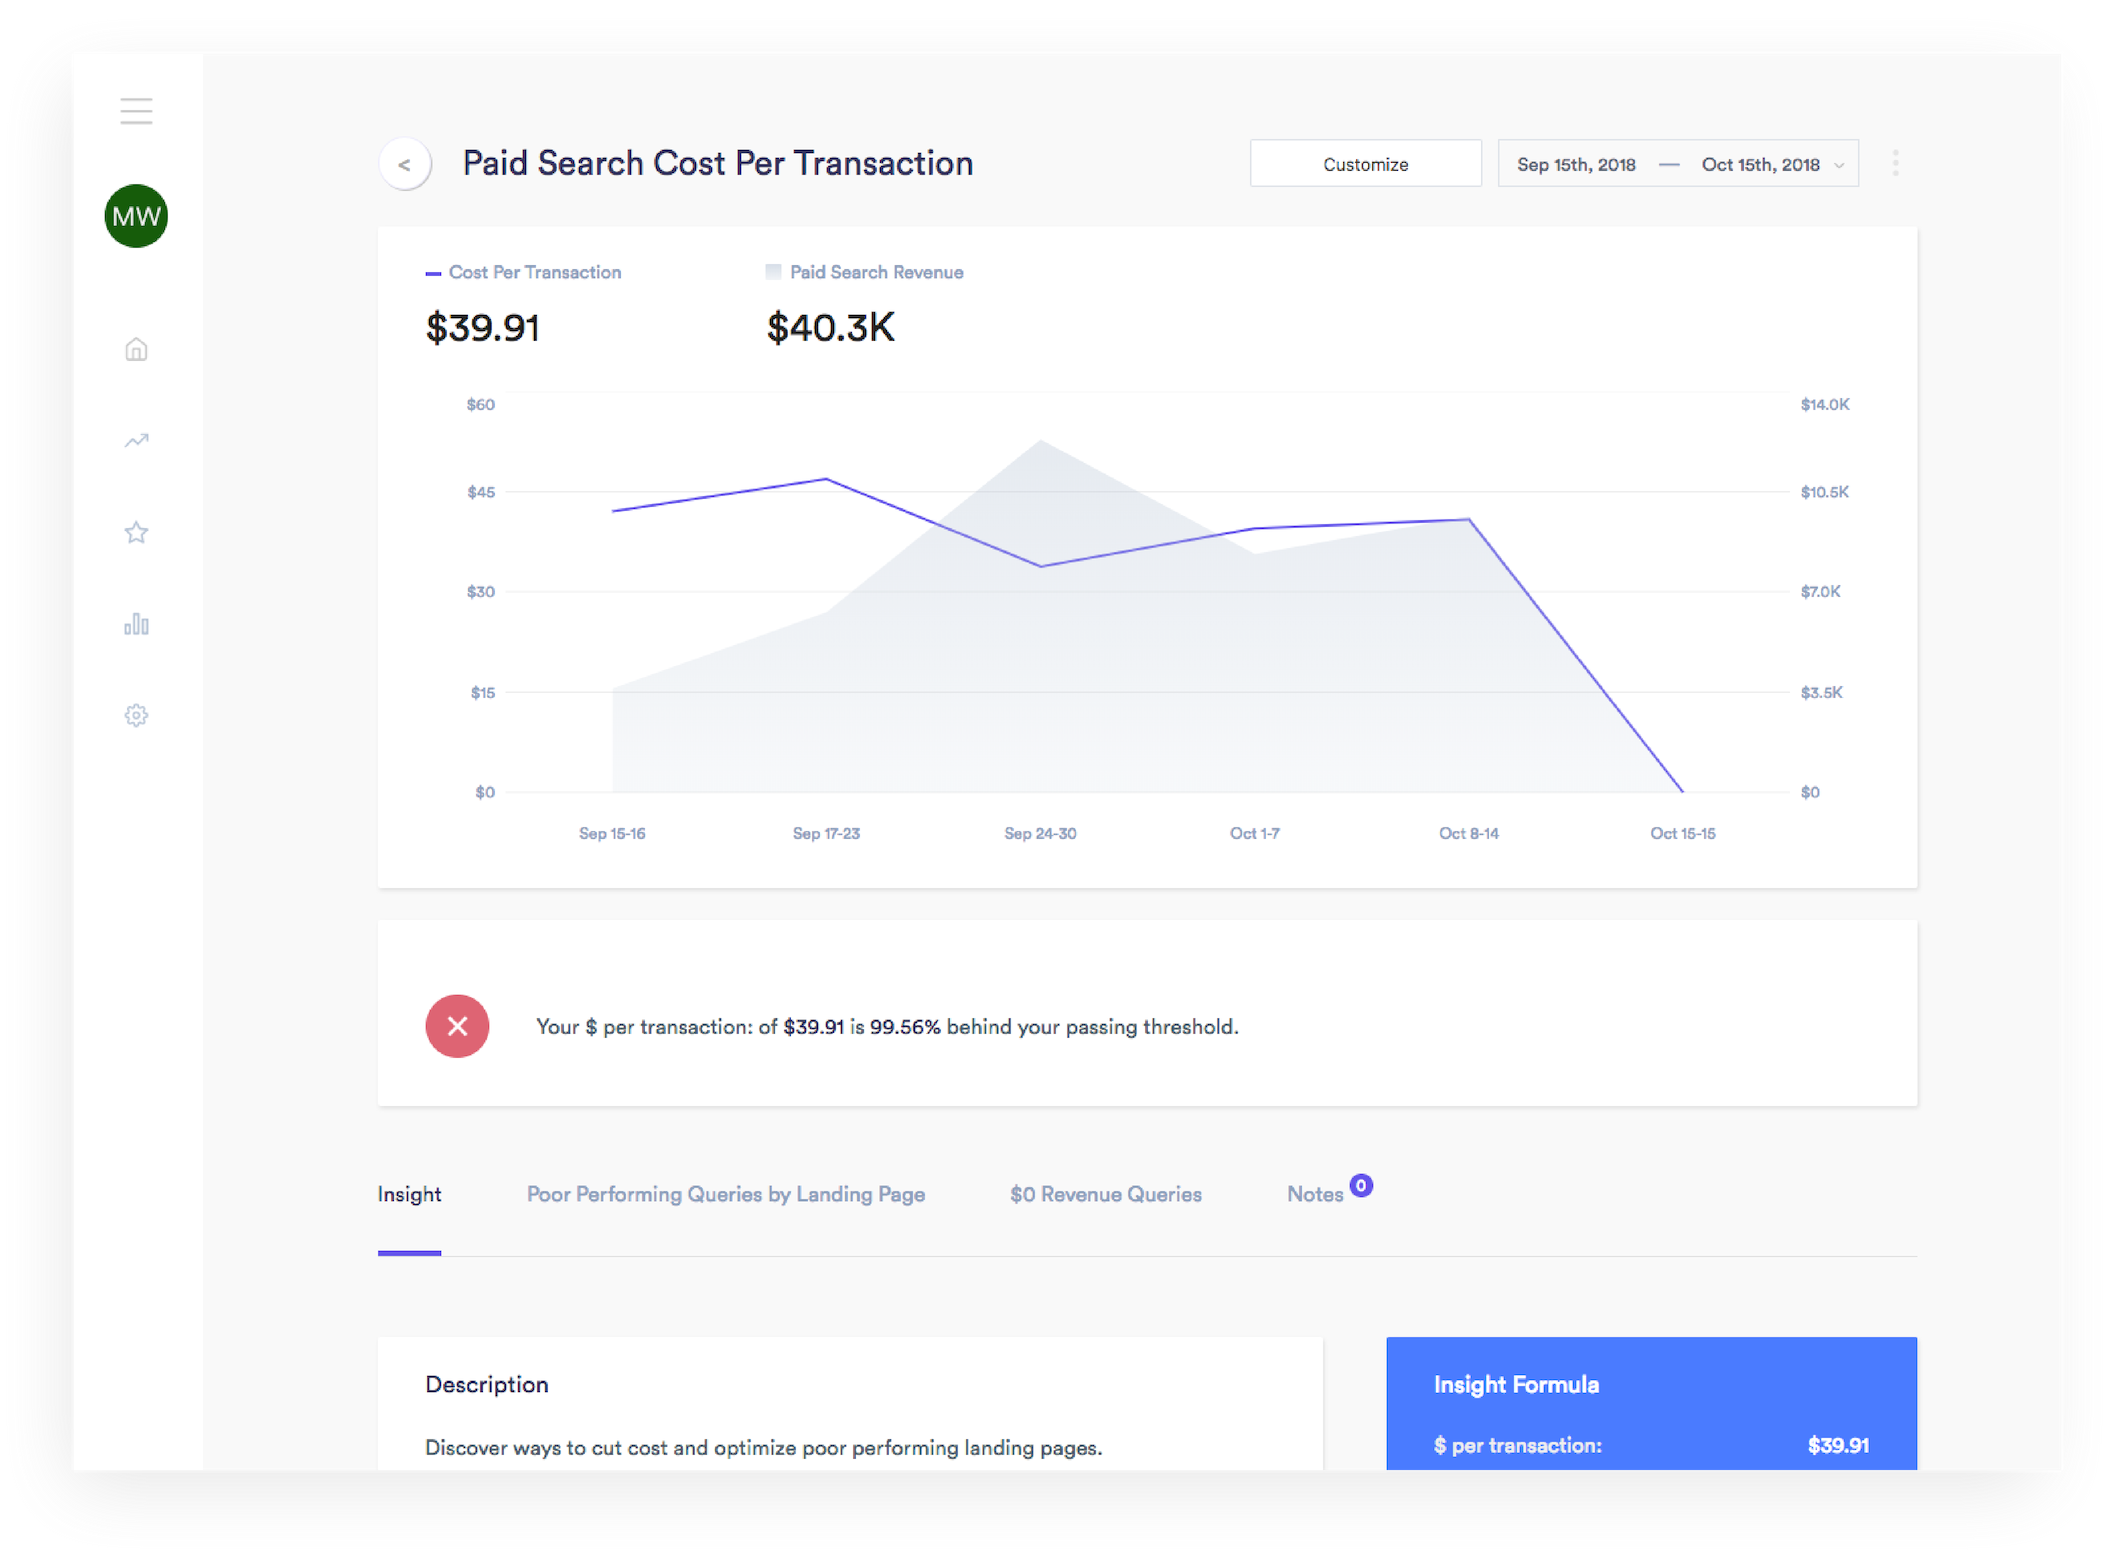 paid-search-cost-per-transaction